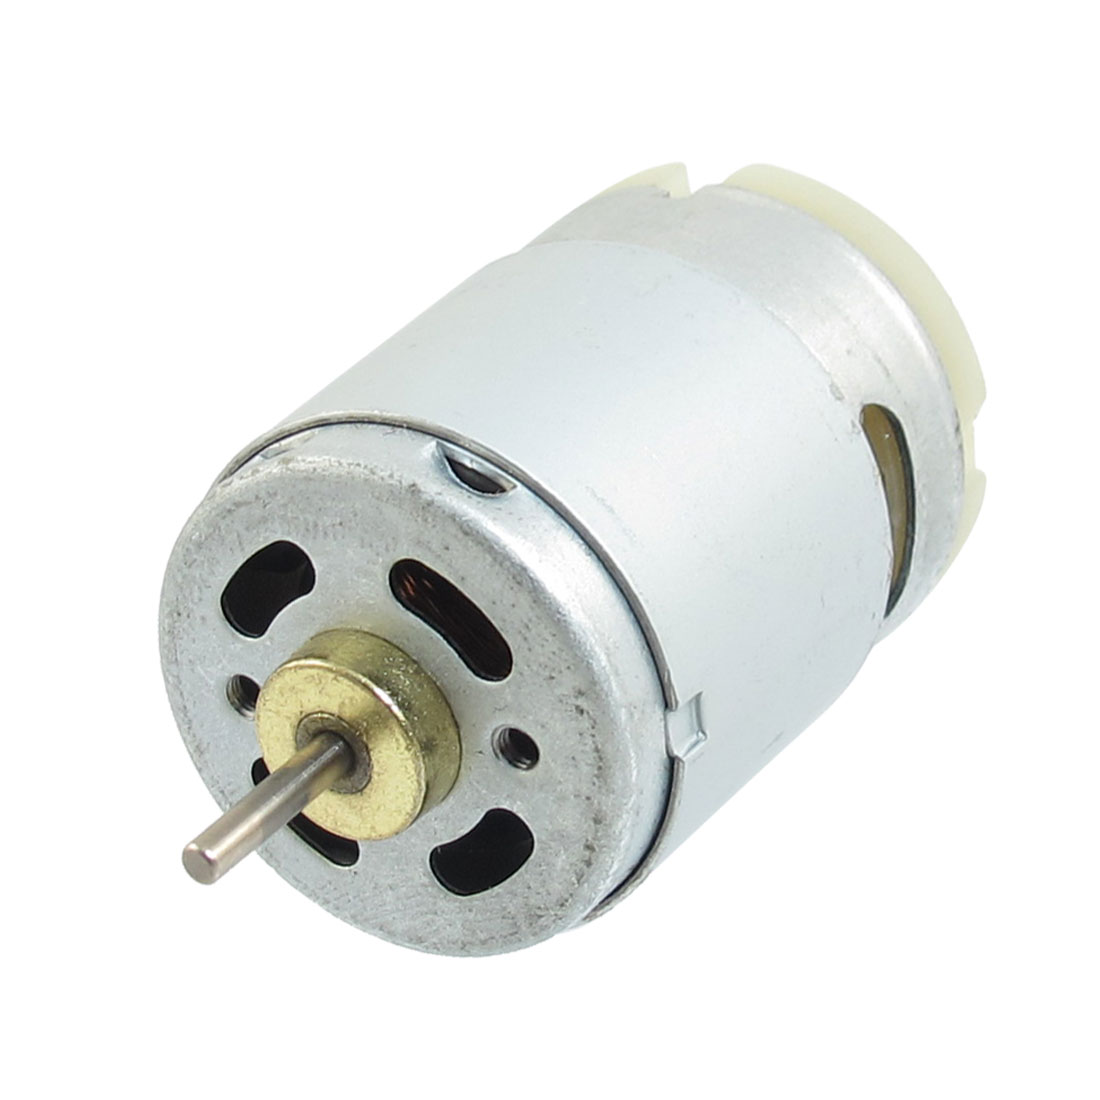 DC 12V 0.14A 9000RPM 2.3mm Dia Shaft 2 Terminals 2P Gear Motor Replacement Parts